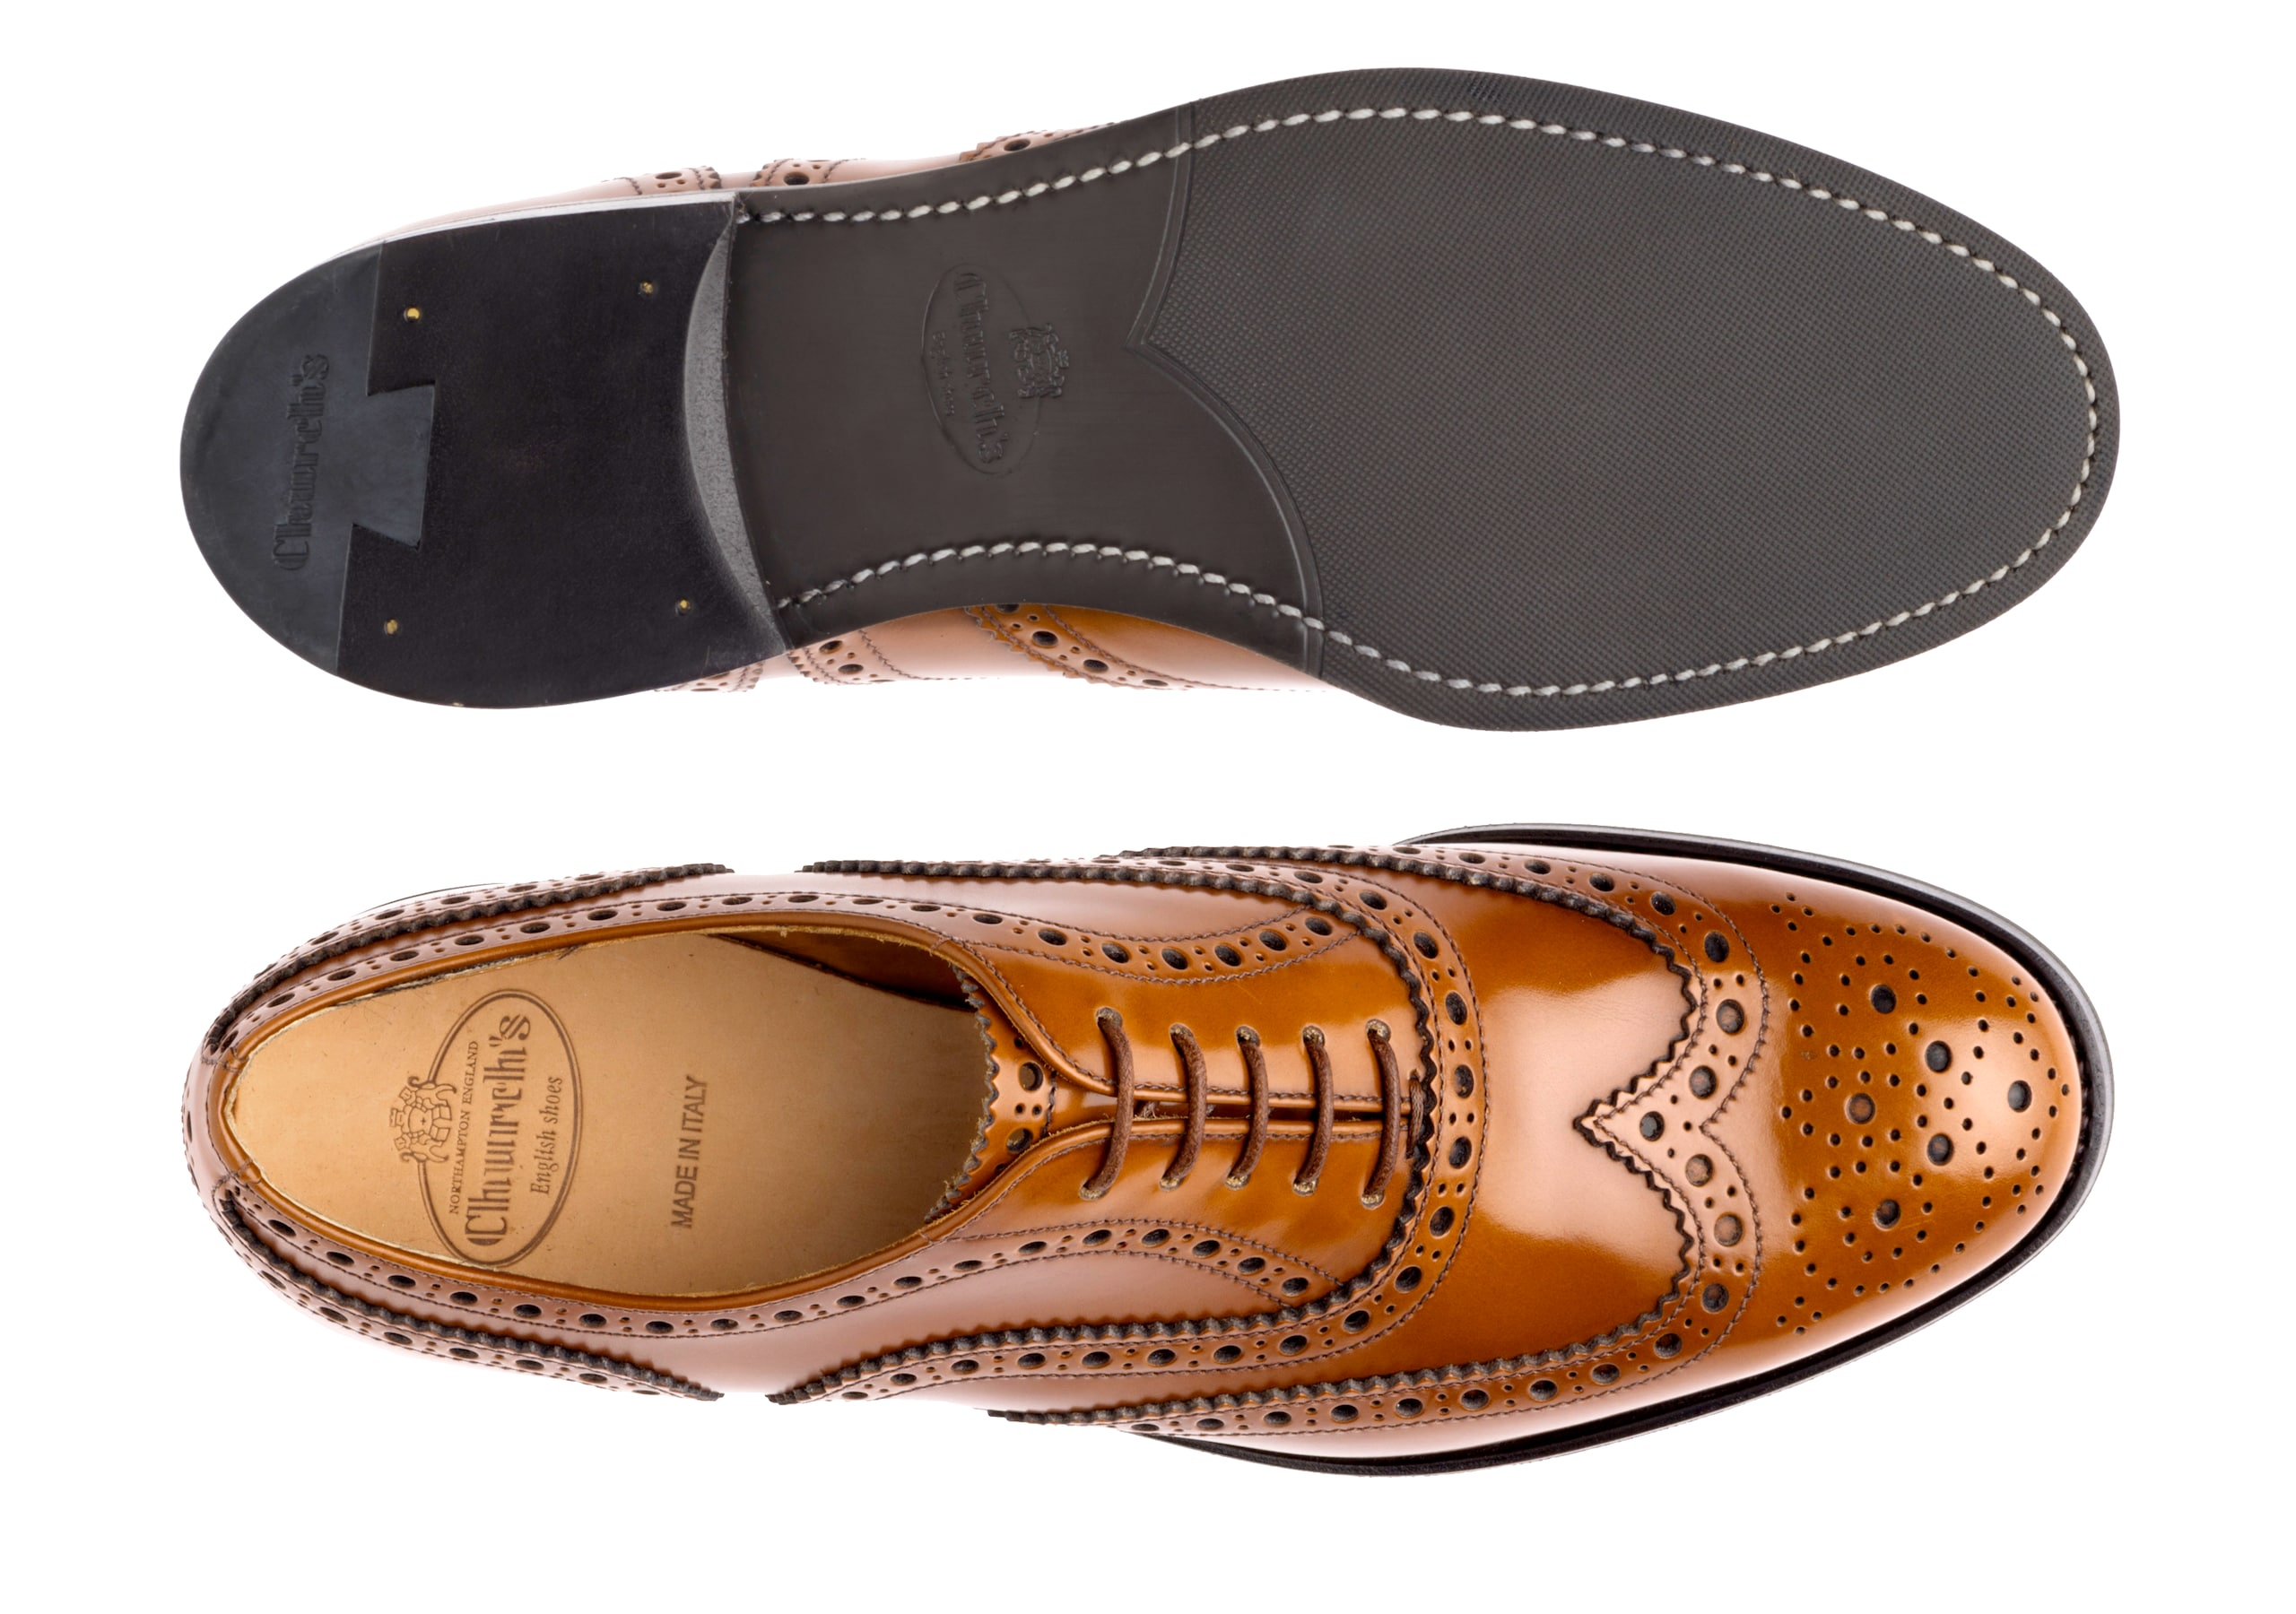 Burwood wg Church's Polished Binder Oxford Brogue Brown